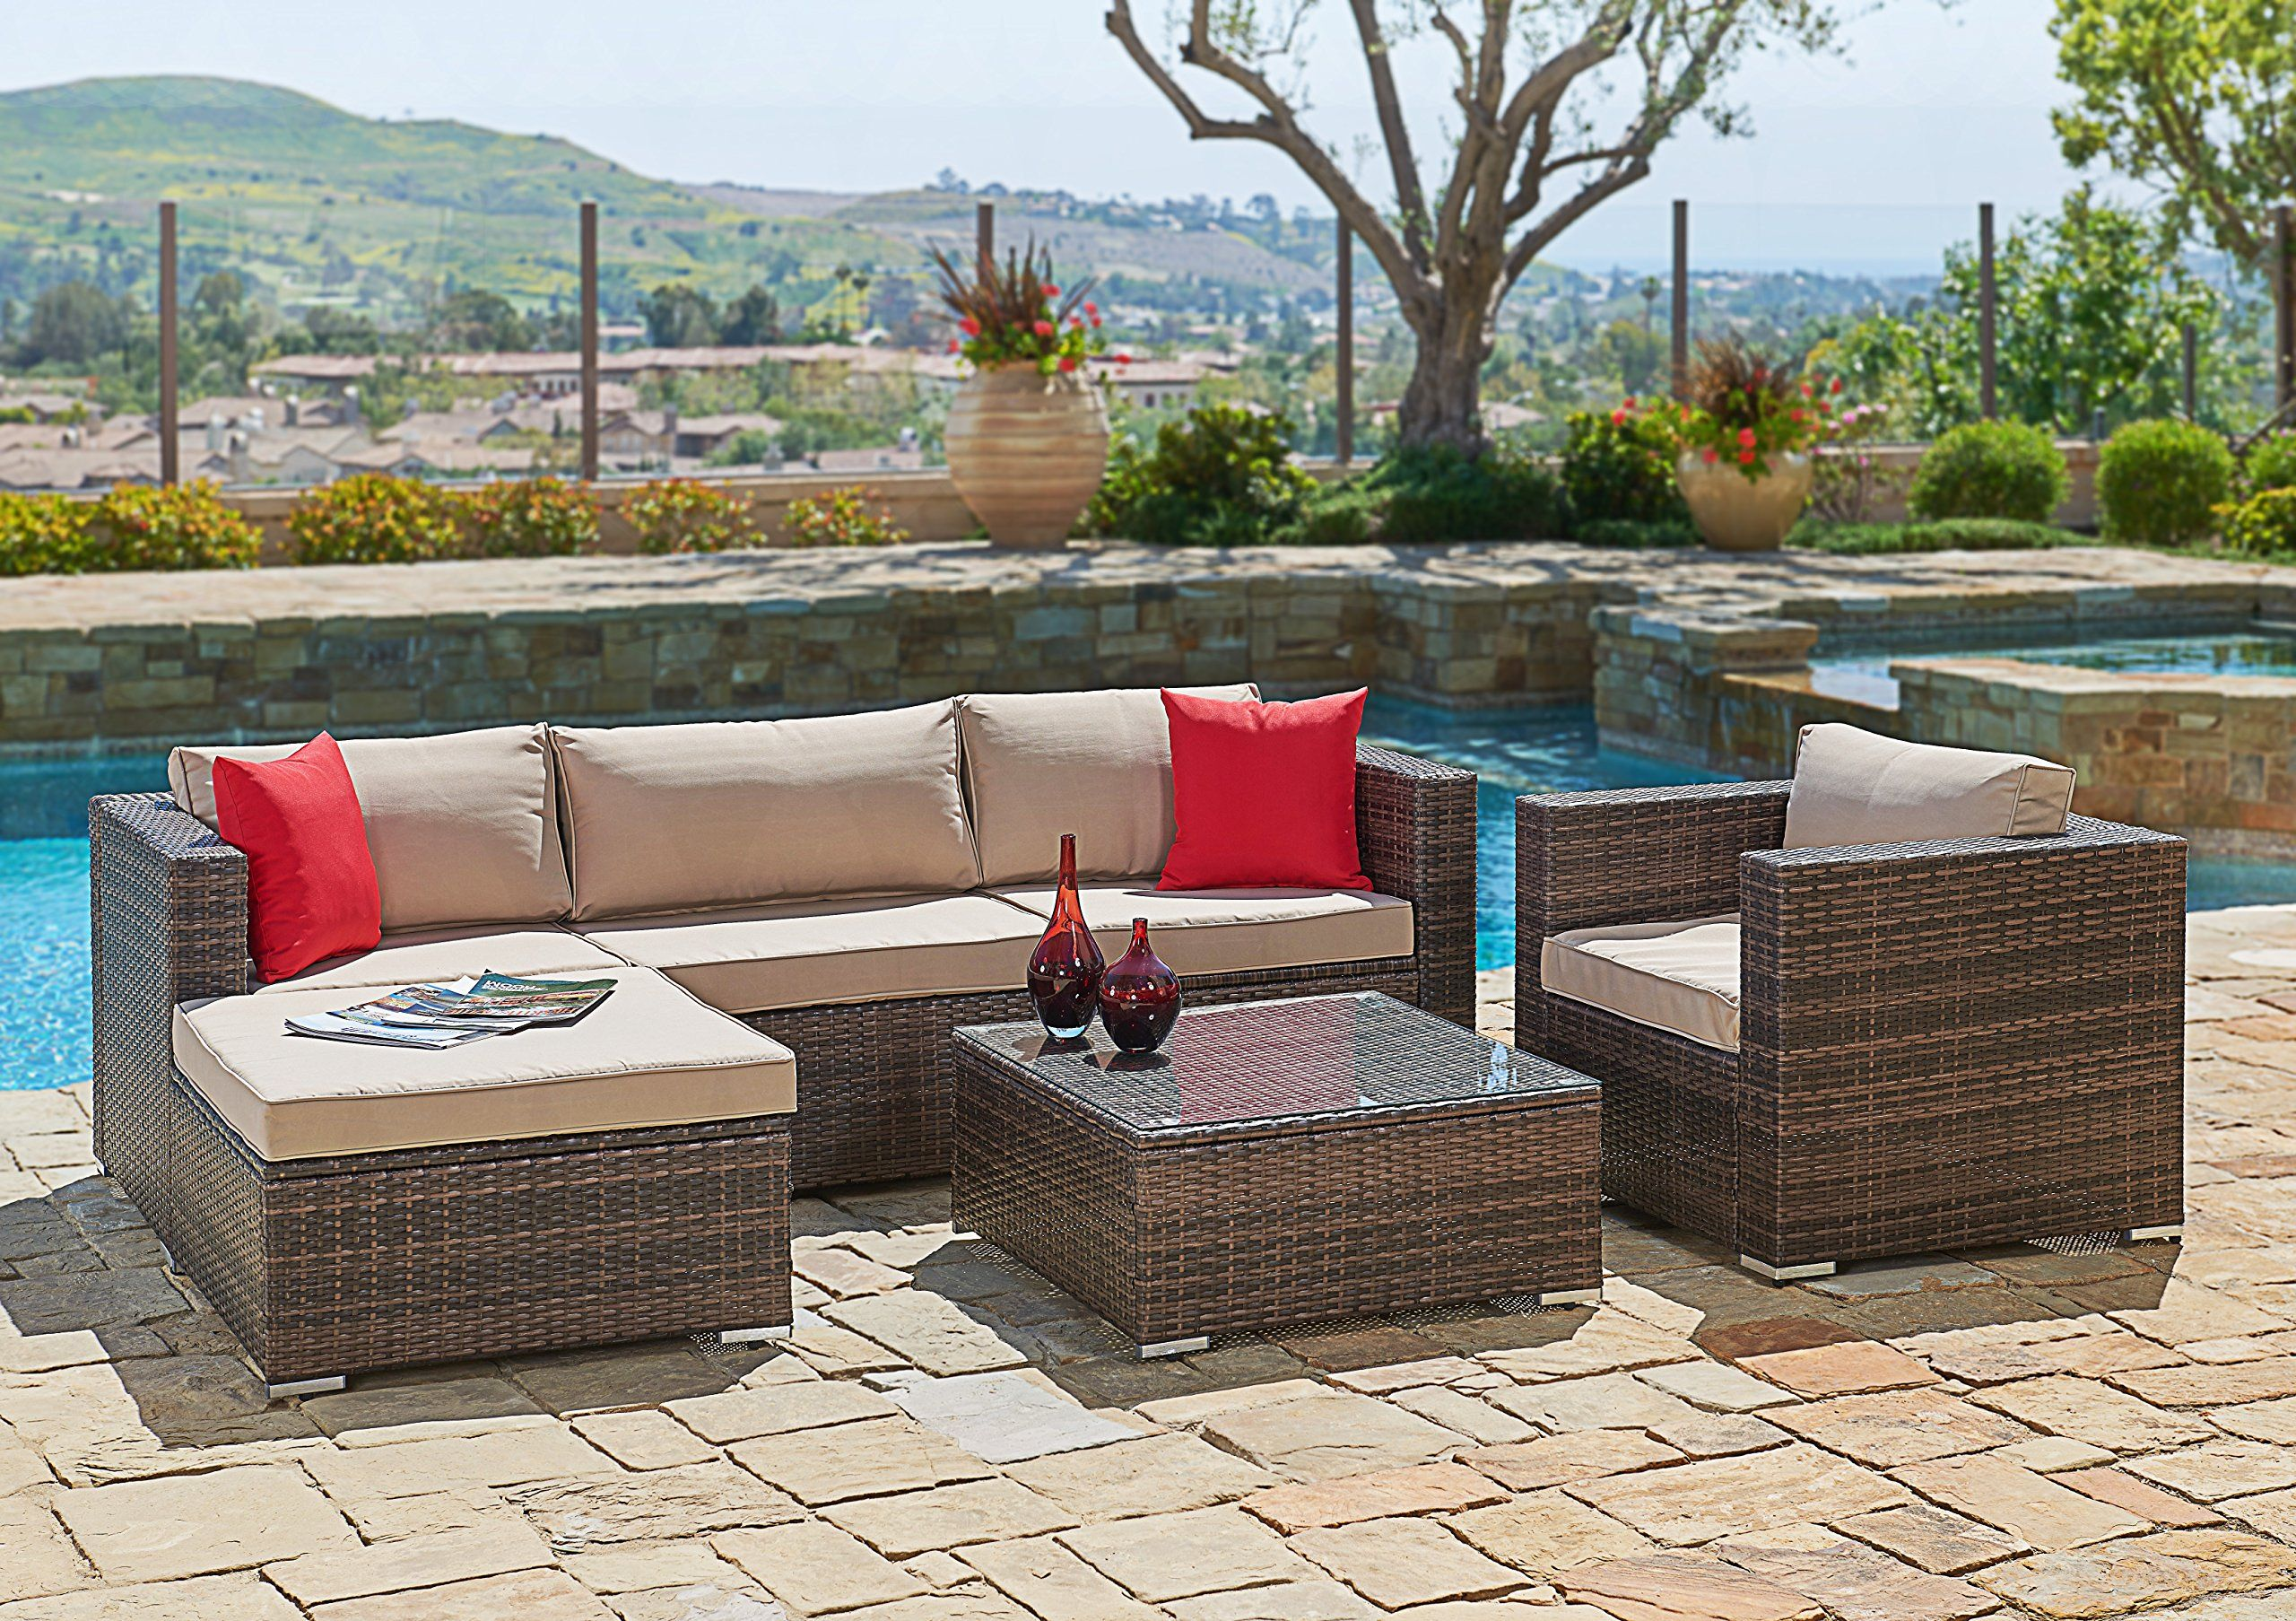 suncrown outdoor furniture sectional sofa chair 6 piece set